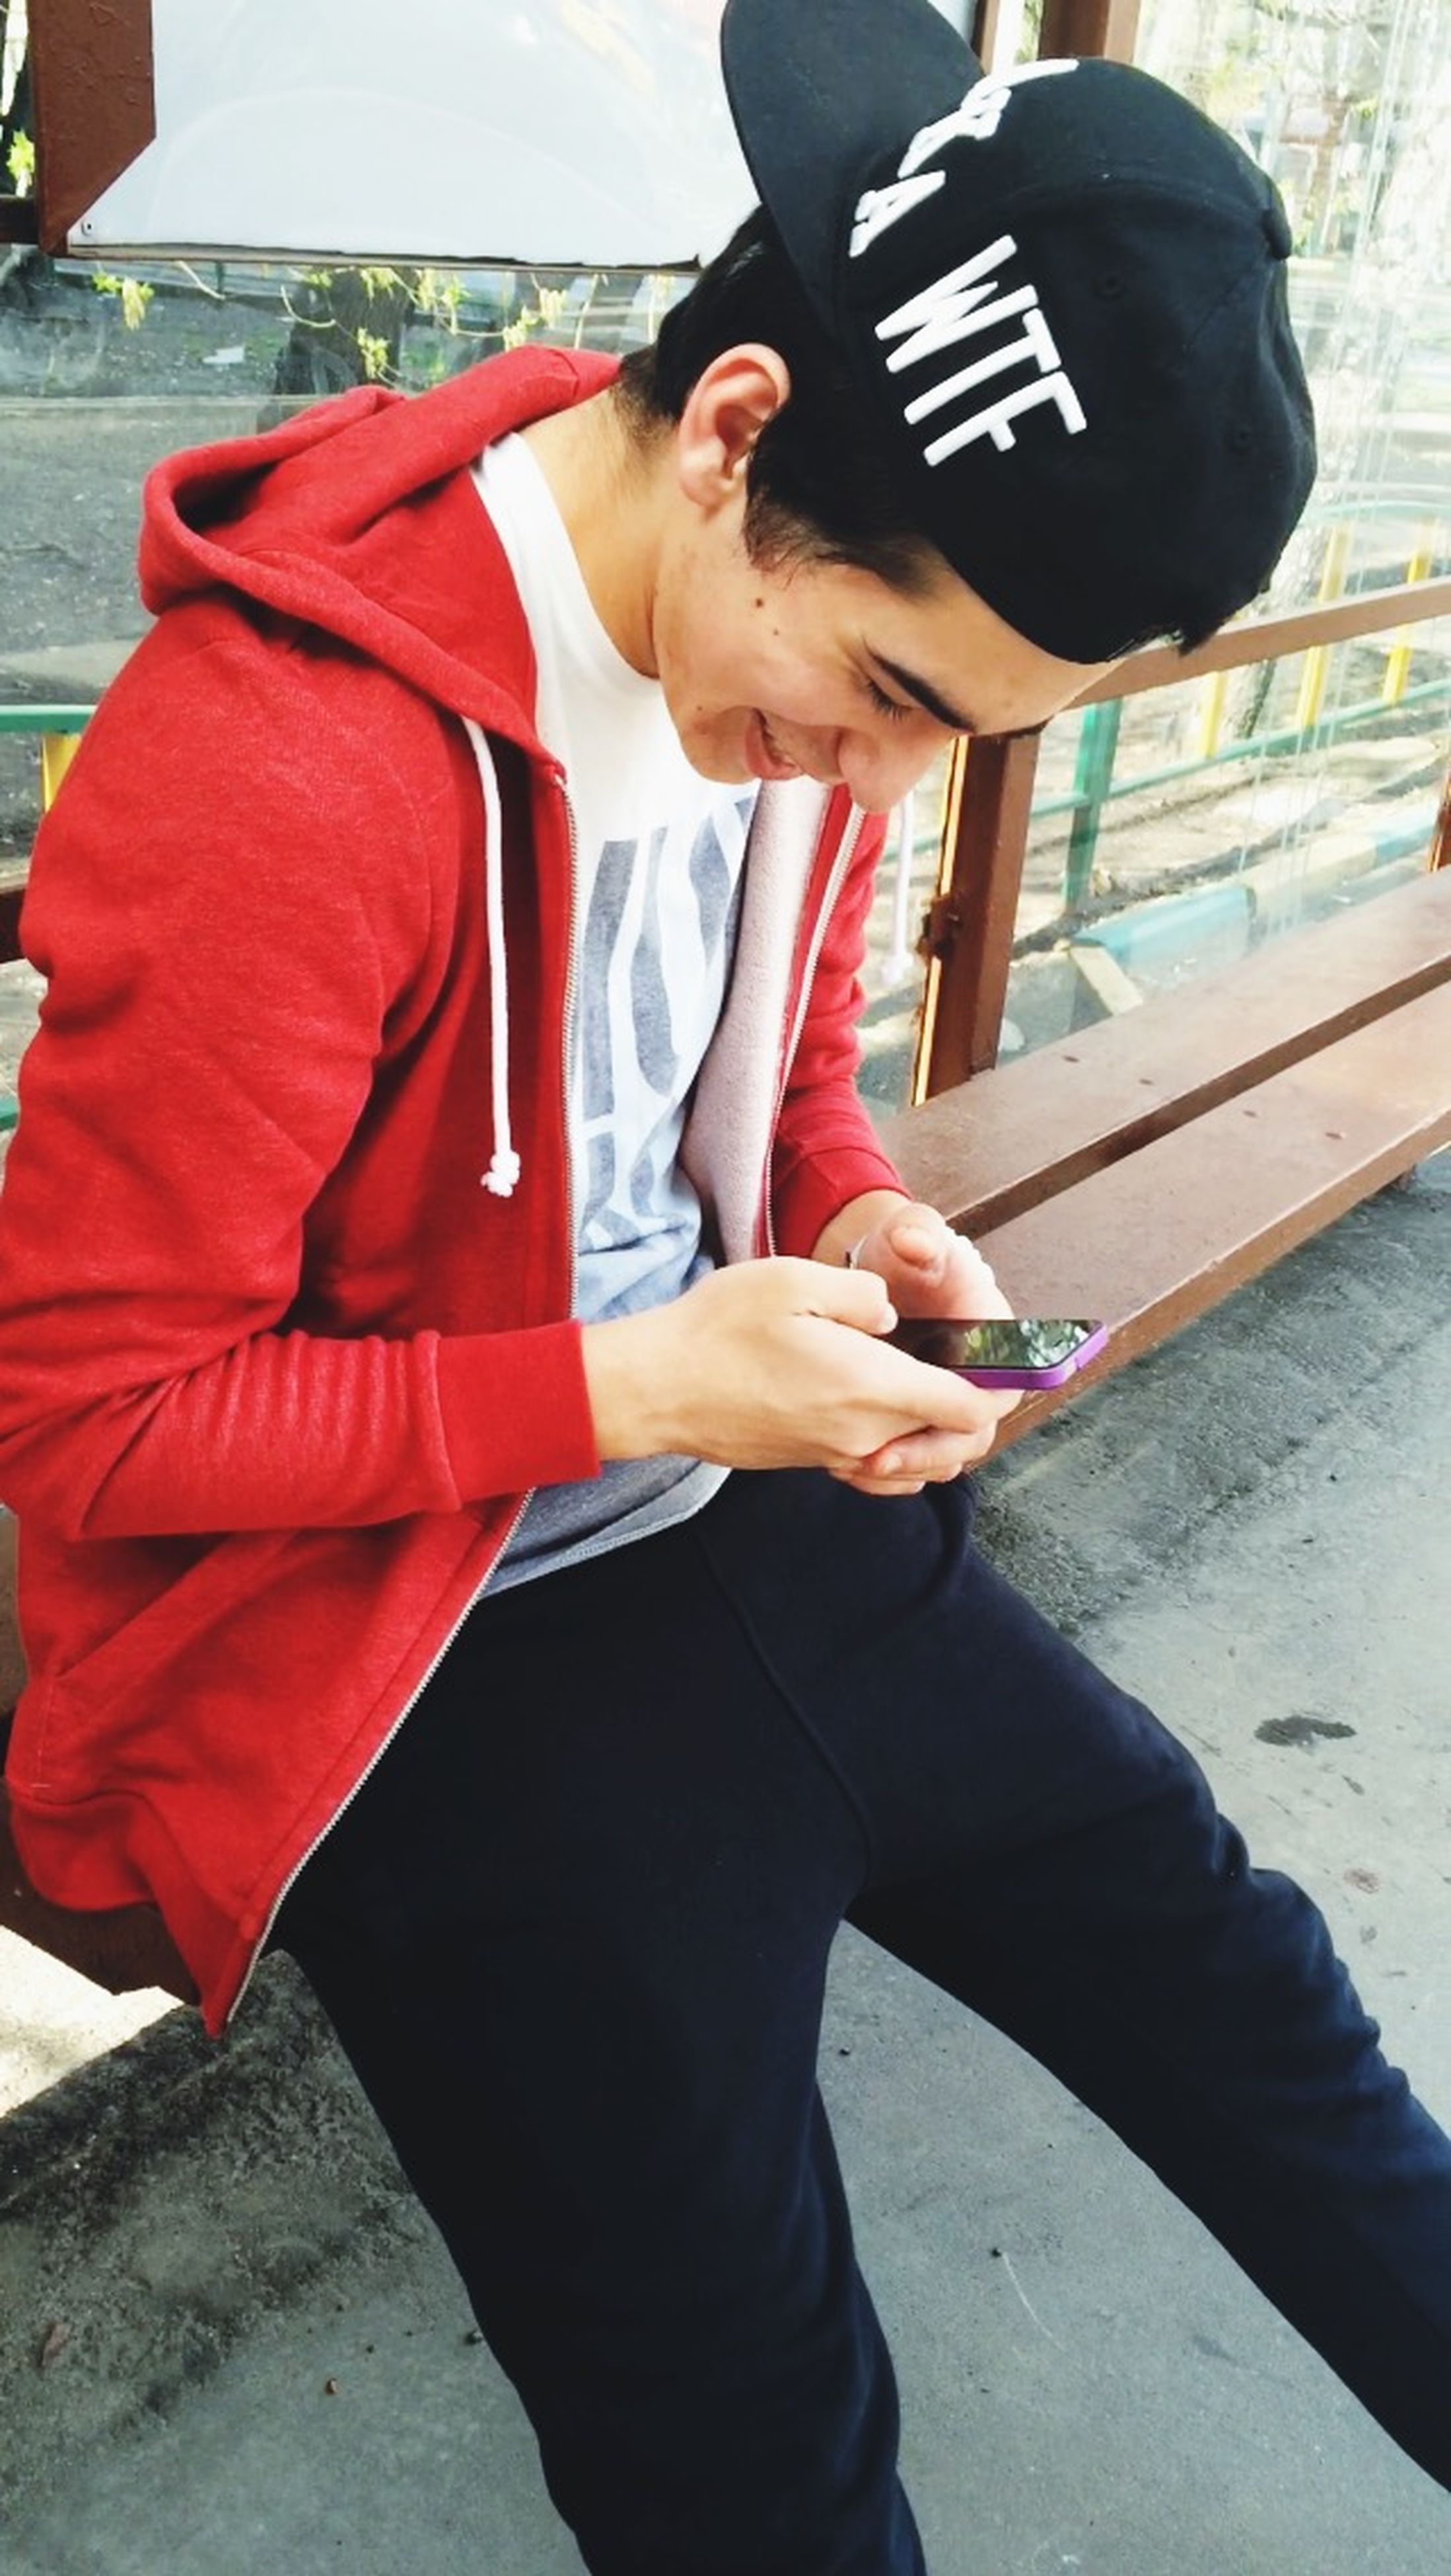 lifestyles, casual clothing, communication, holding, standing, leisure activity, young adult, technology, young men, wireless technology, three quarter length, mobile phone, front view, smart phone, photography themes, jacket, men, photographing